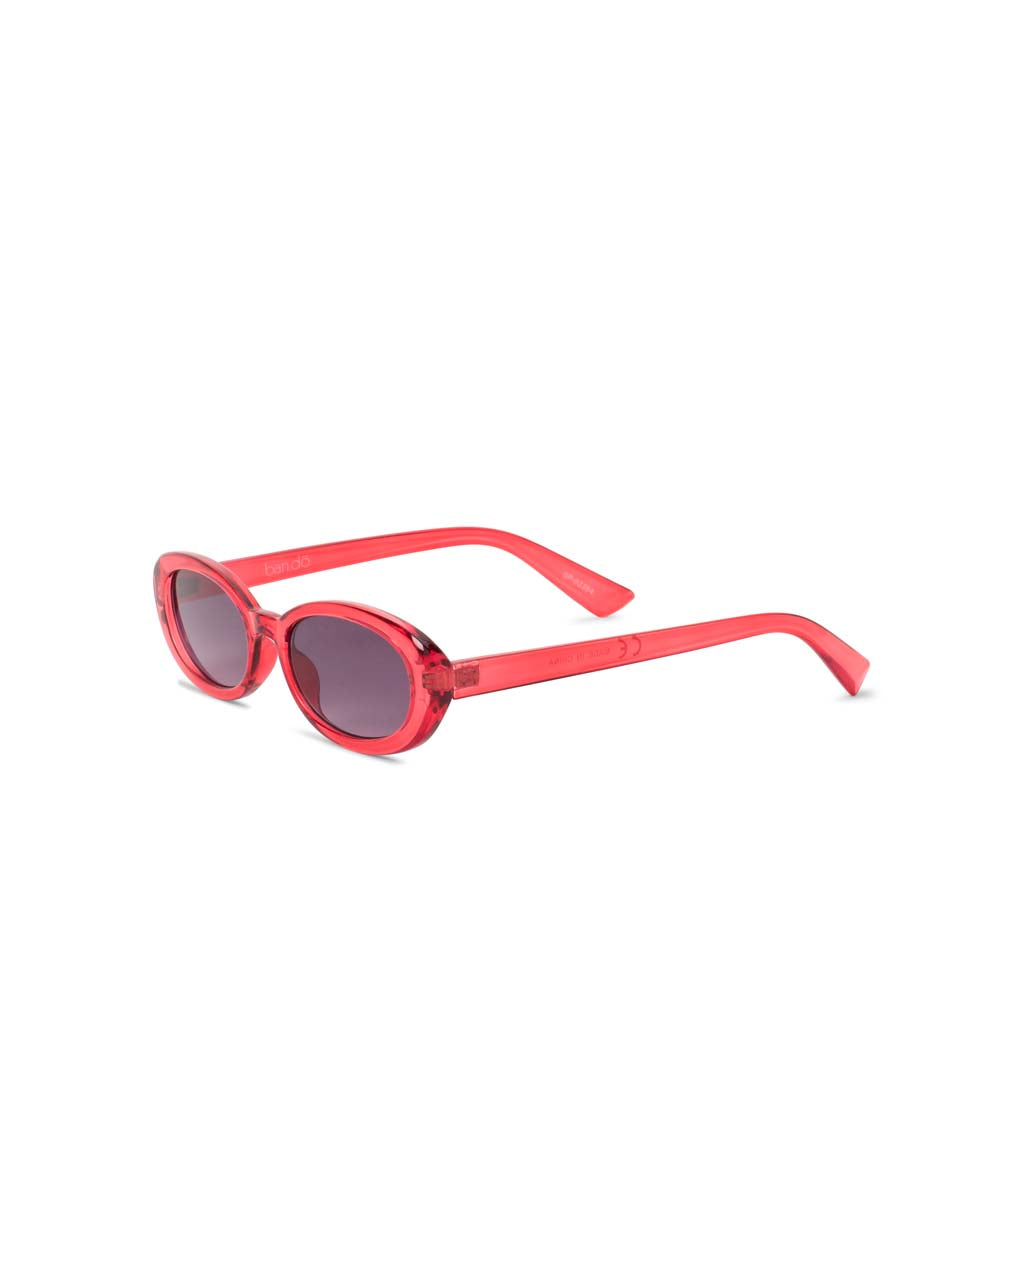 side view of red frame sunglasses